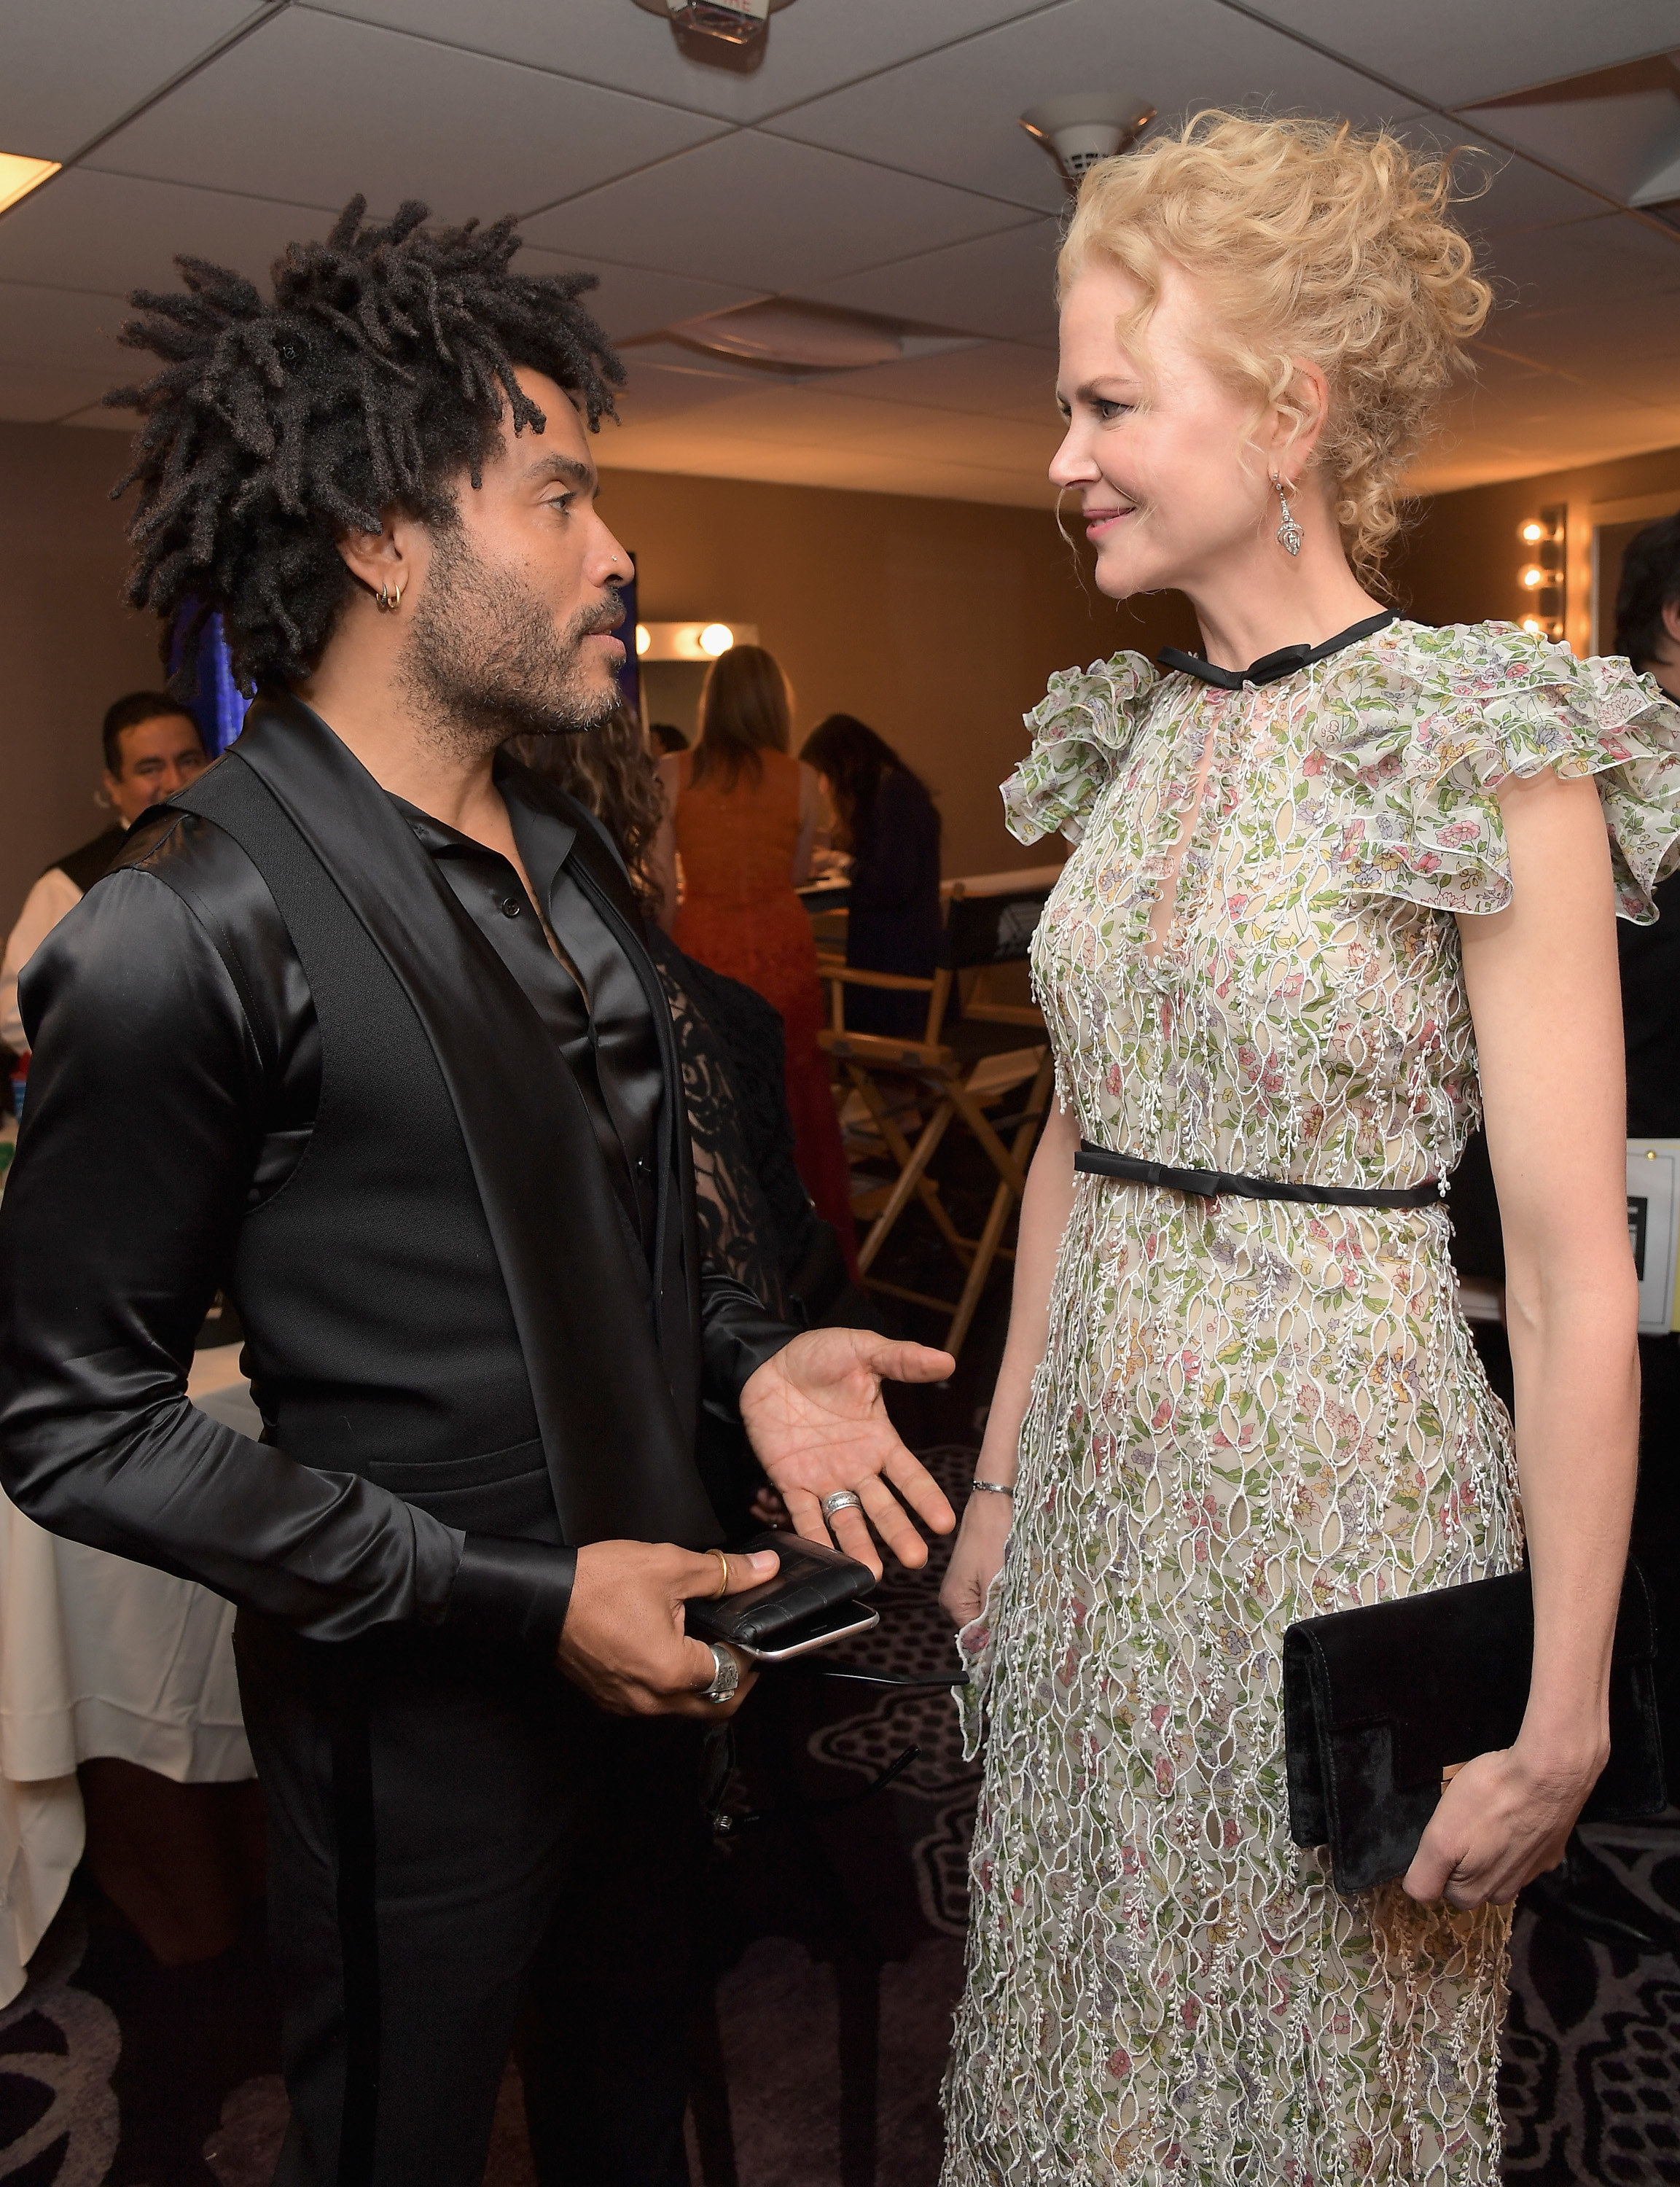 Lenny Kravitz and Nicole Kidman talking backstage at an event